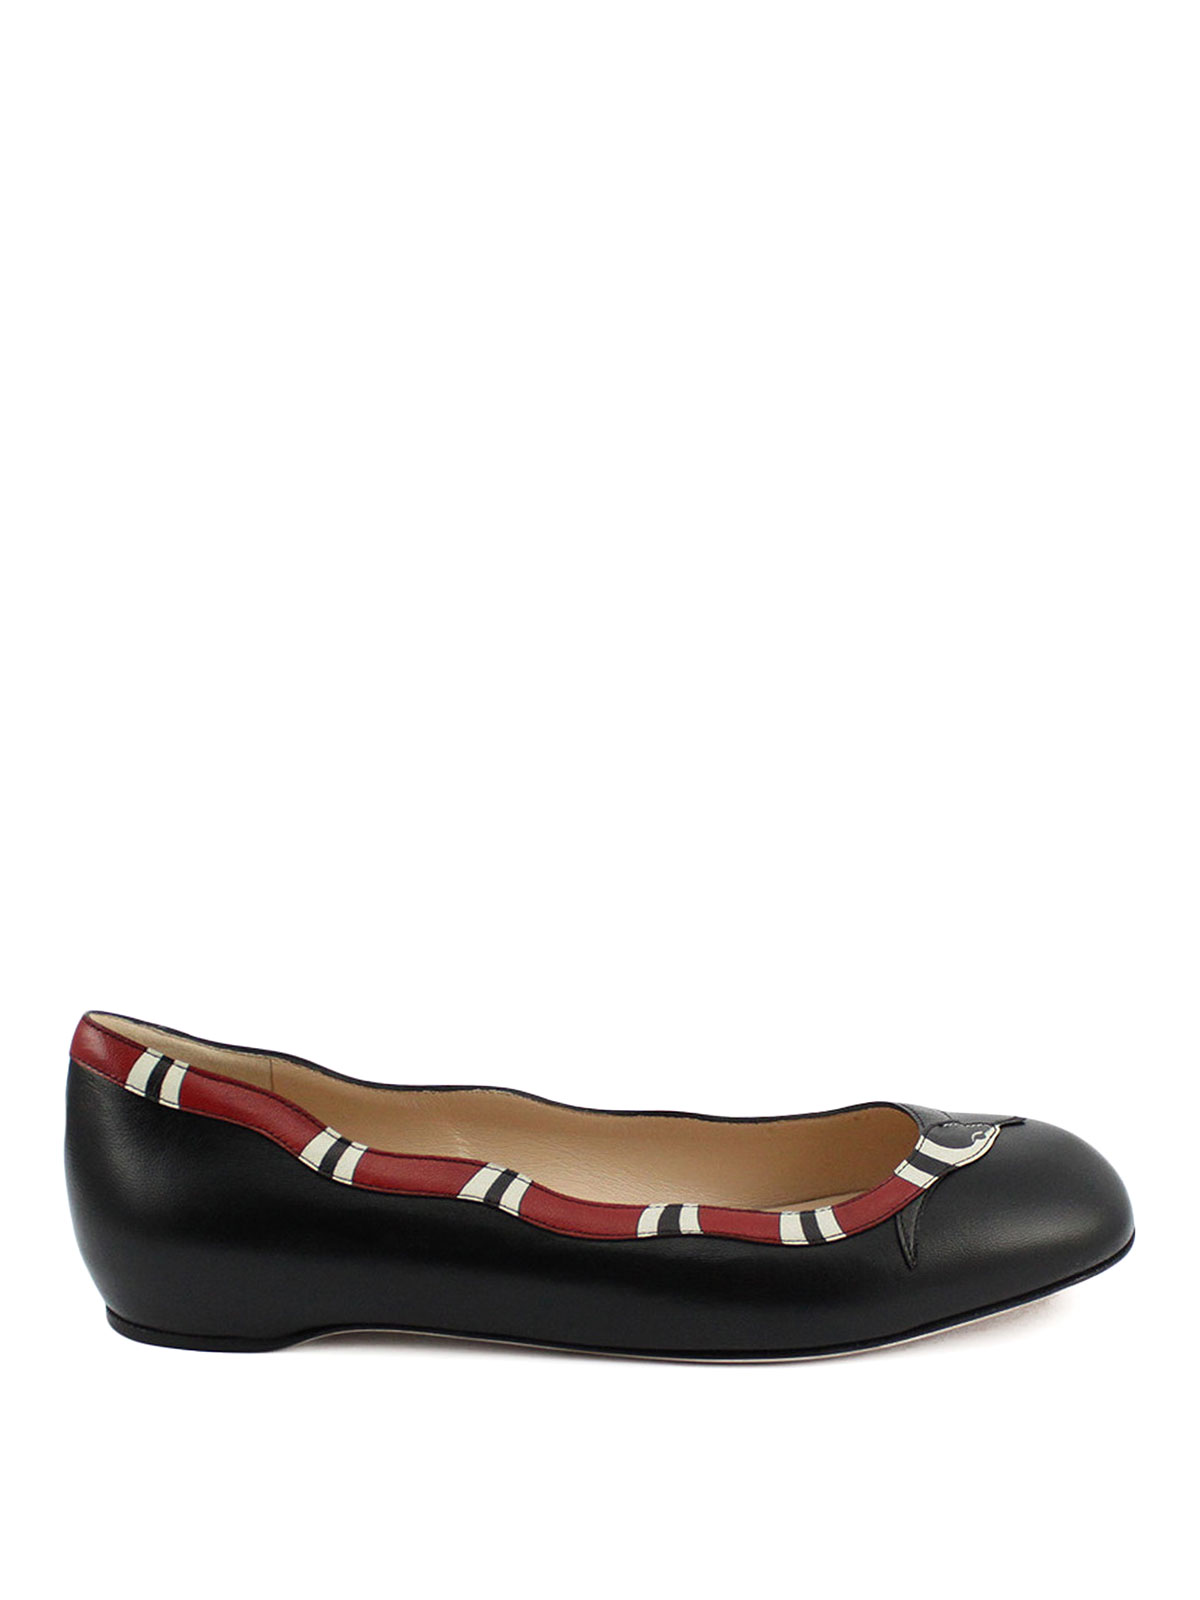 Kingsnake Leather Flat Shoes By Gucci - Flat Shoes | IKRIX